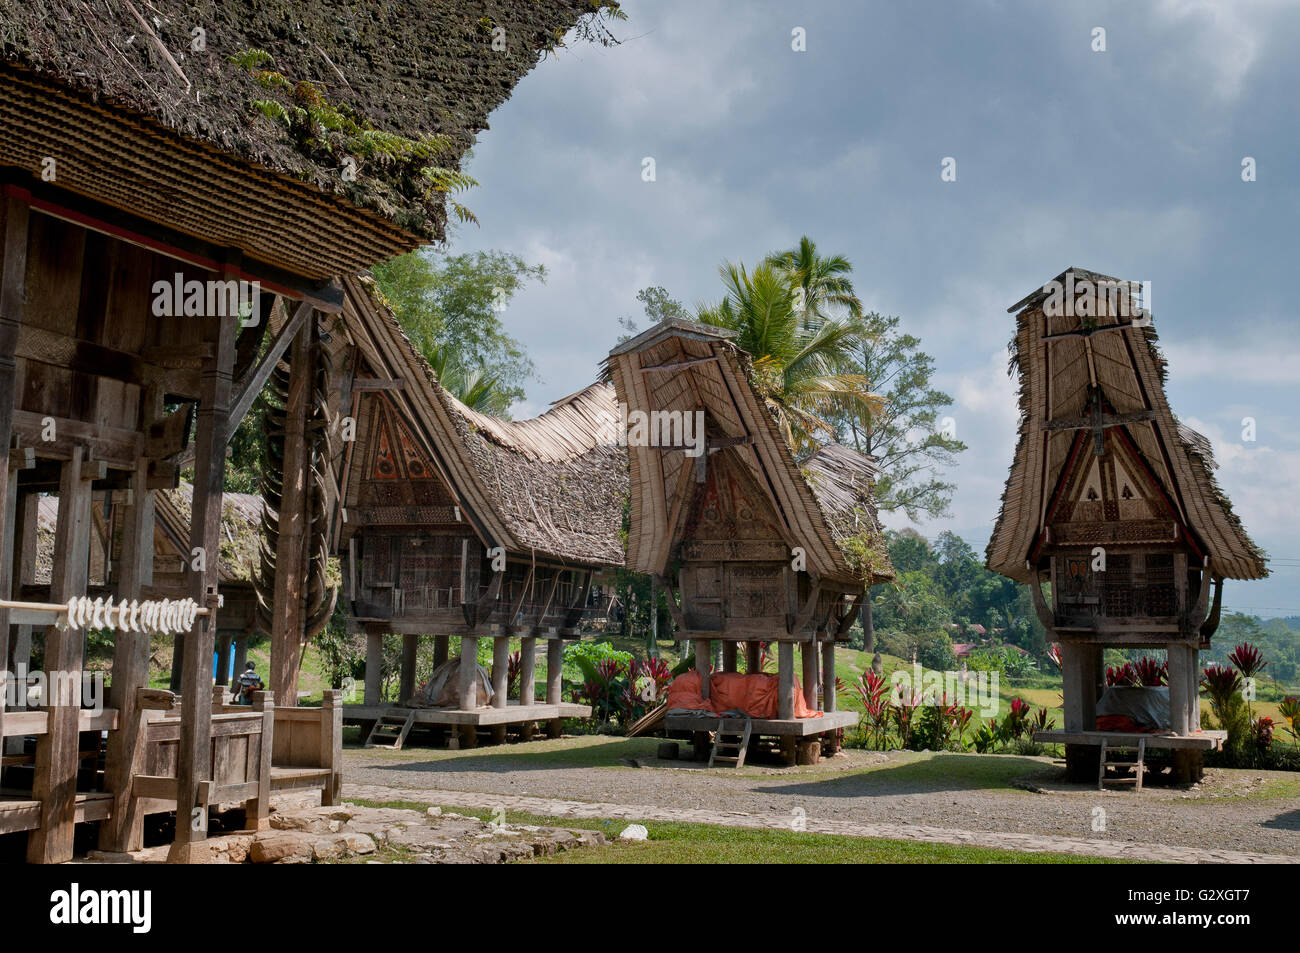 Sulawesi, Kete Kesu Village, traditional stilt houses - Stock Image